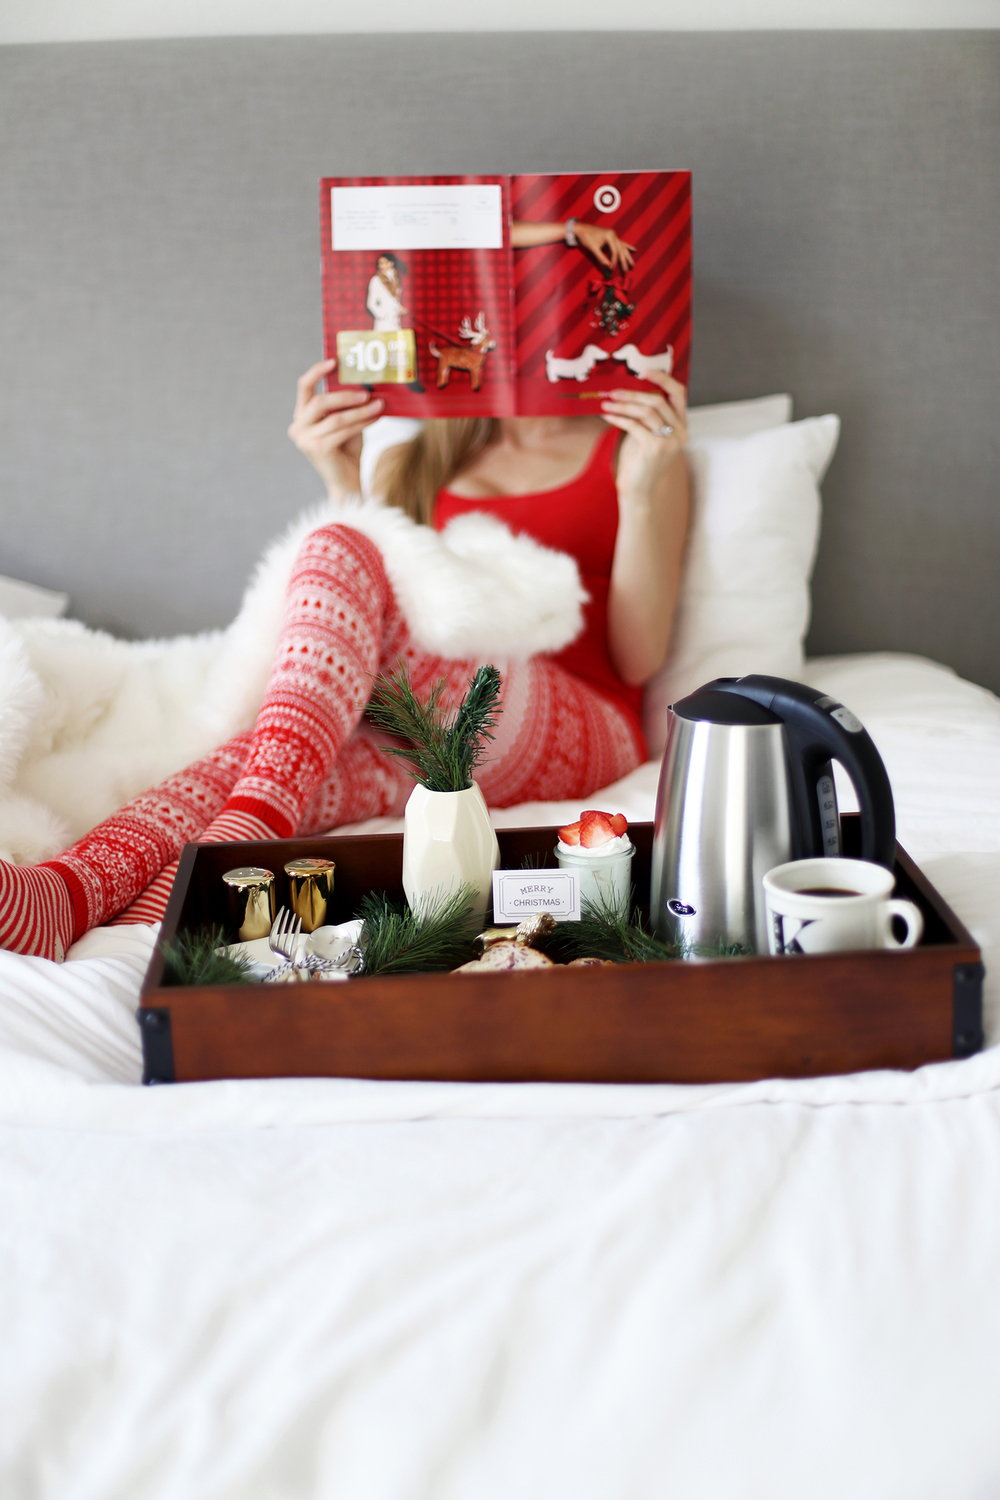 Christmas breakfast in bed ideas